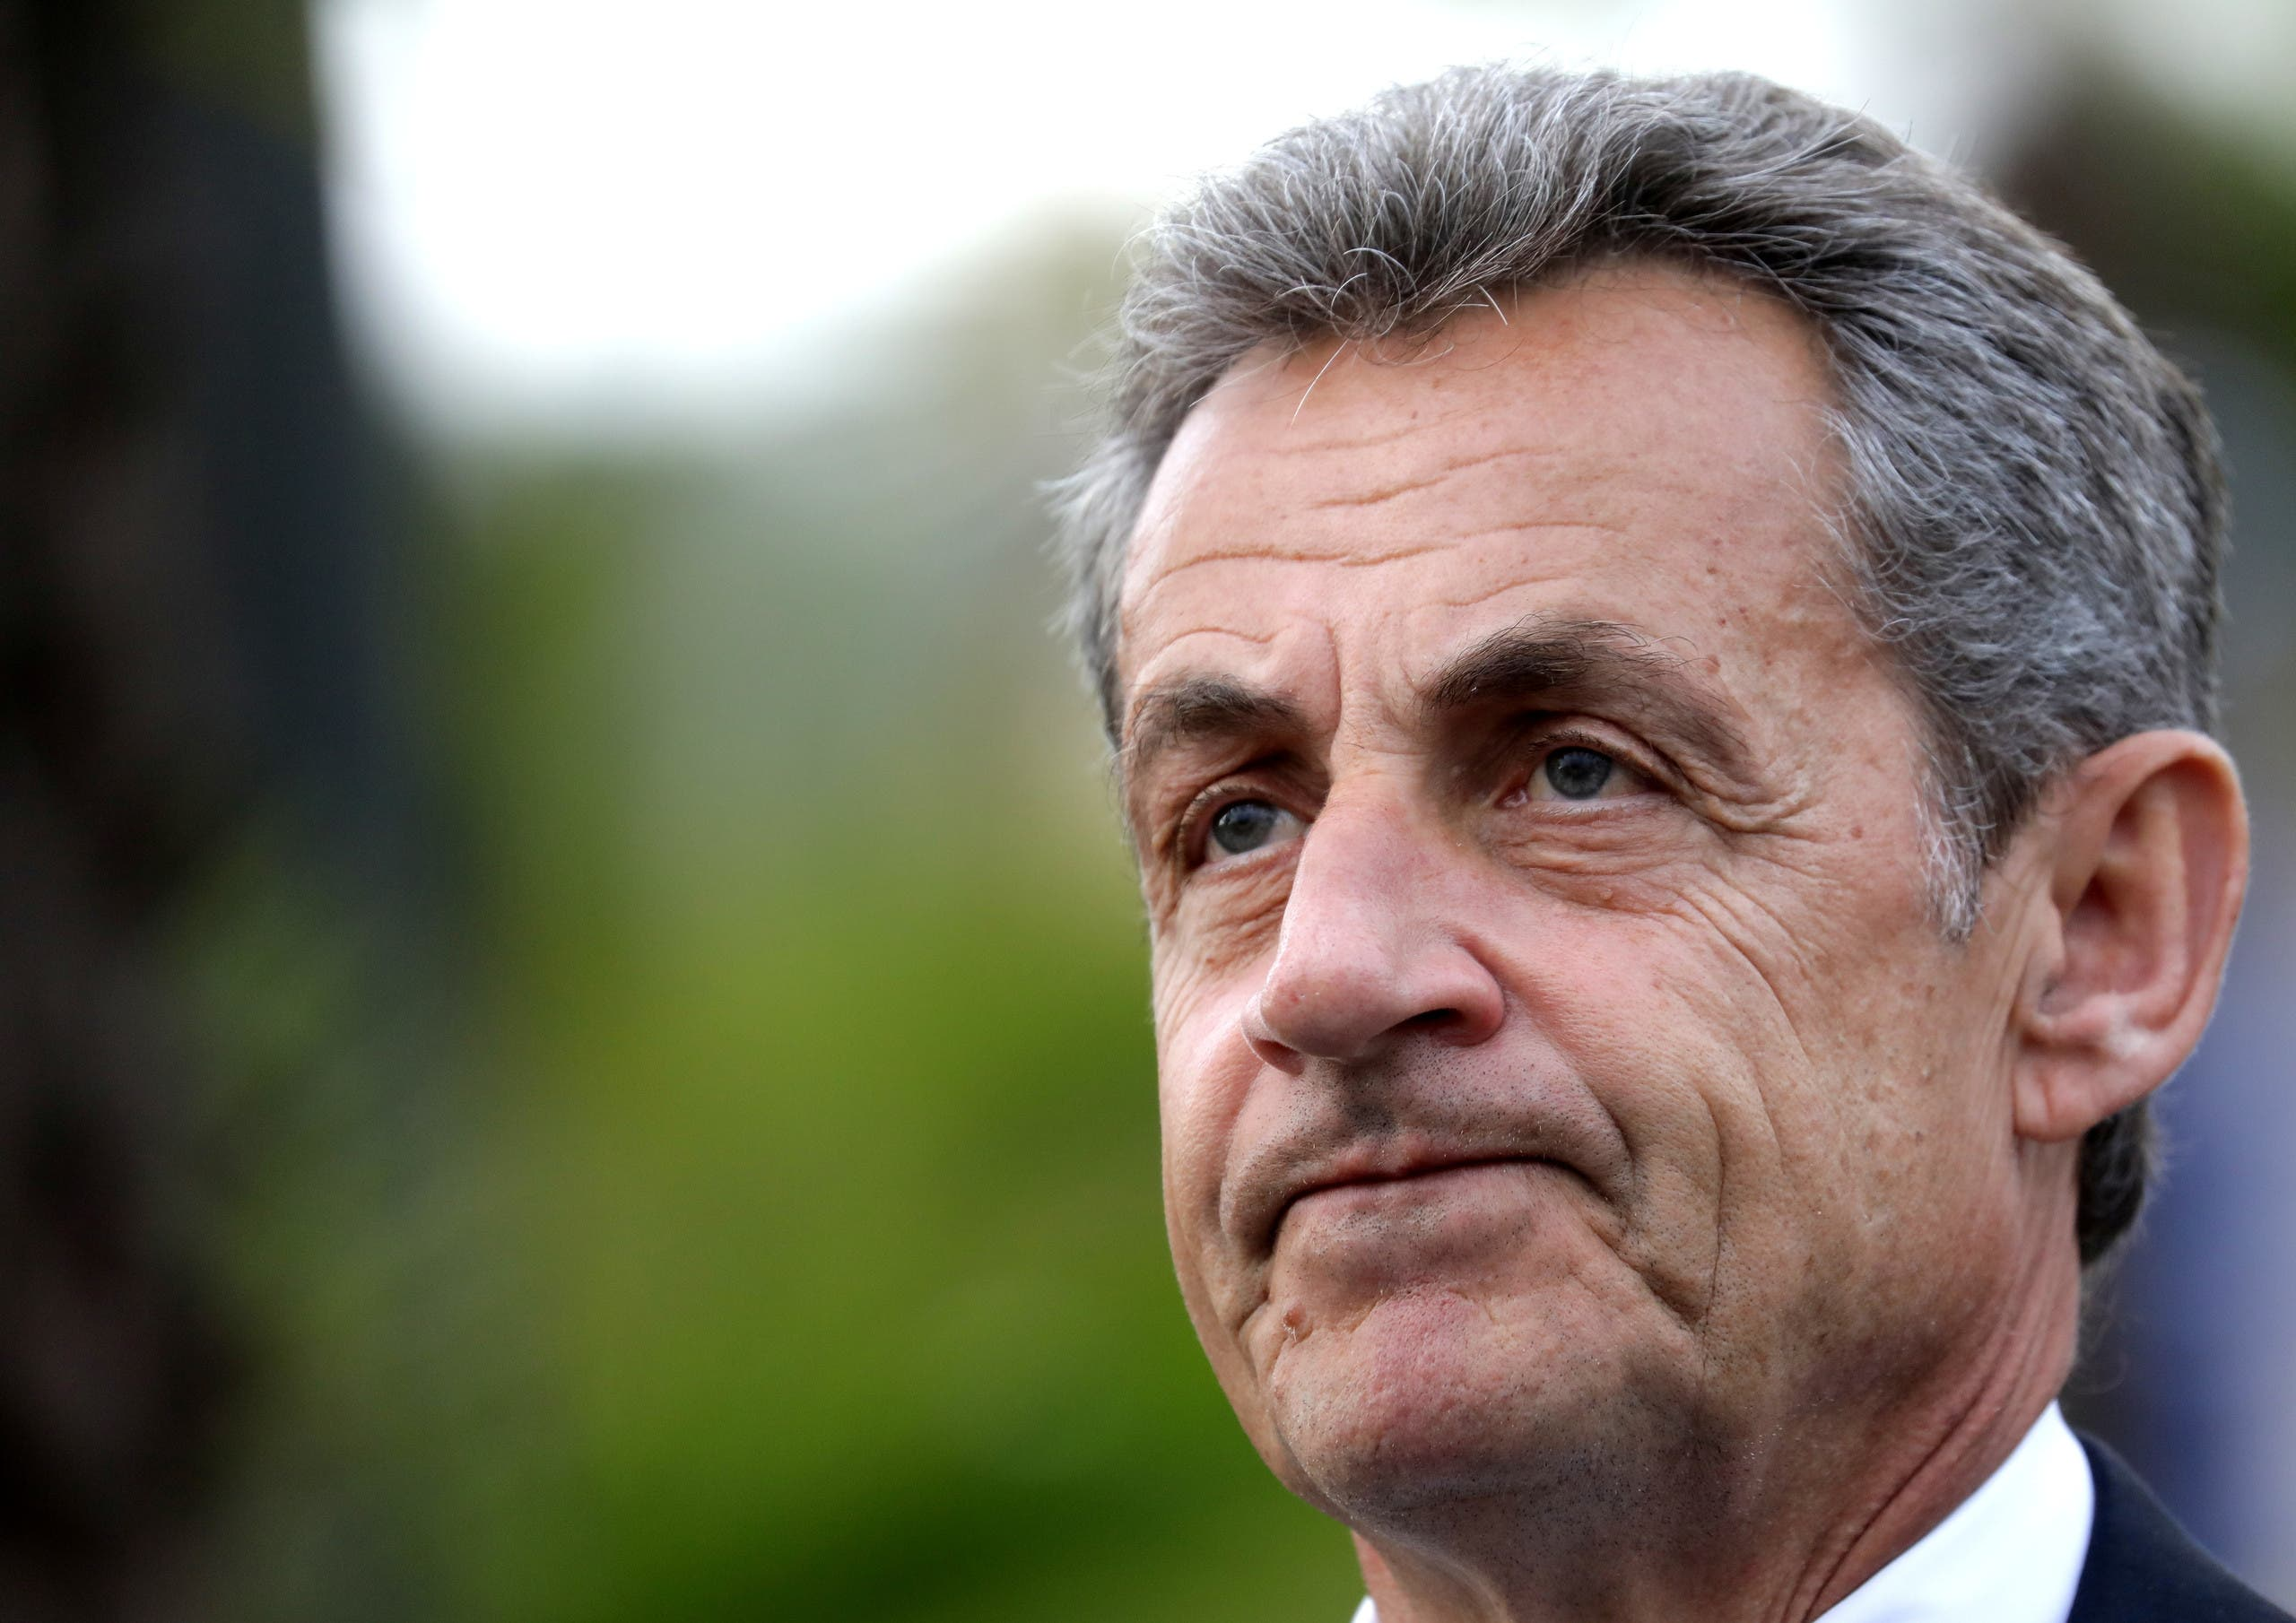 Former French President Nicolas Sarkozy is pictured during a visit in Nice, France, January 13, 2020. (Reuters)